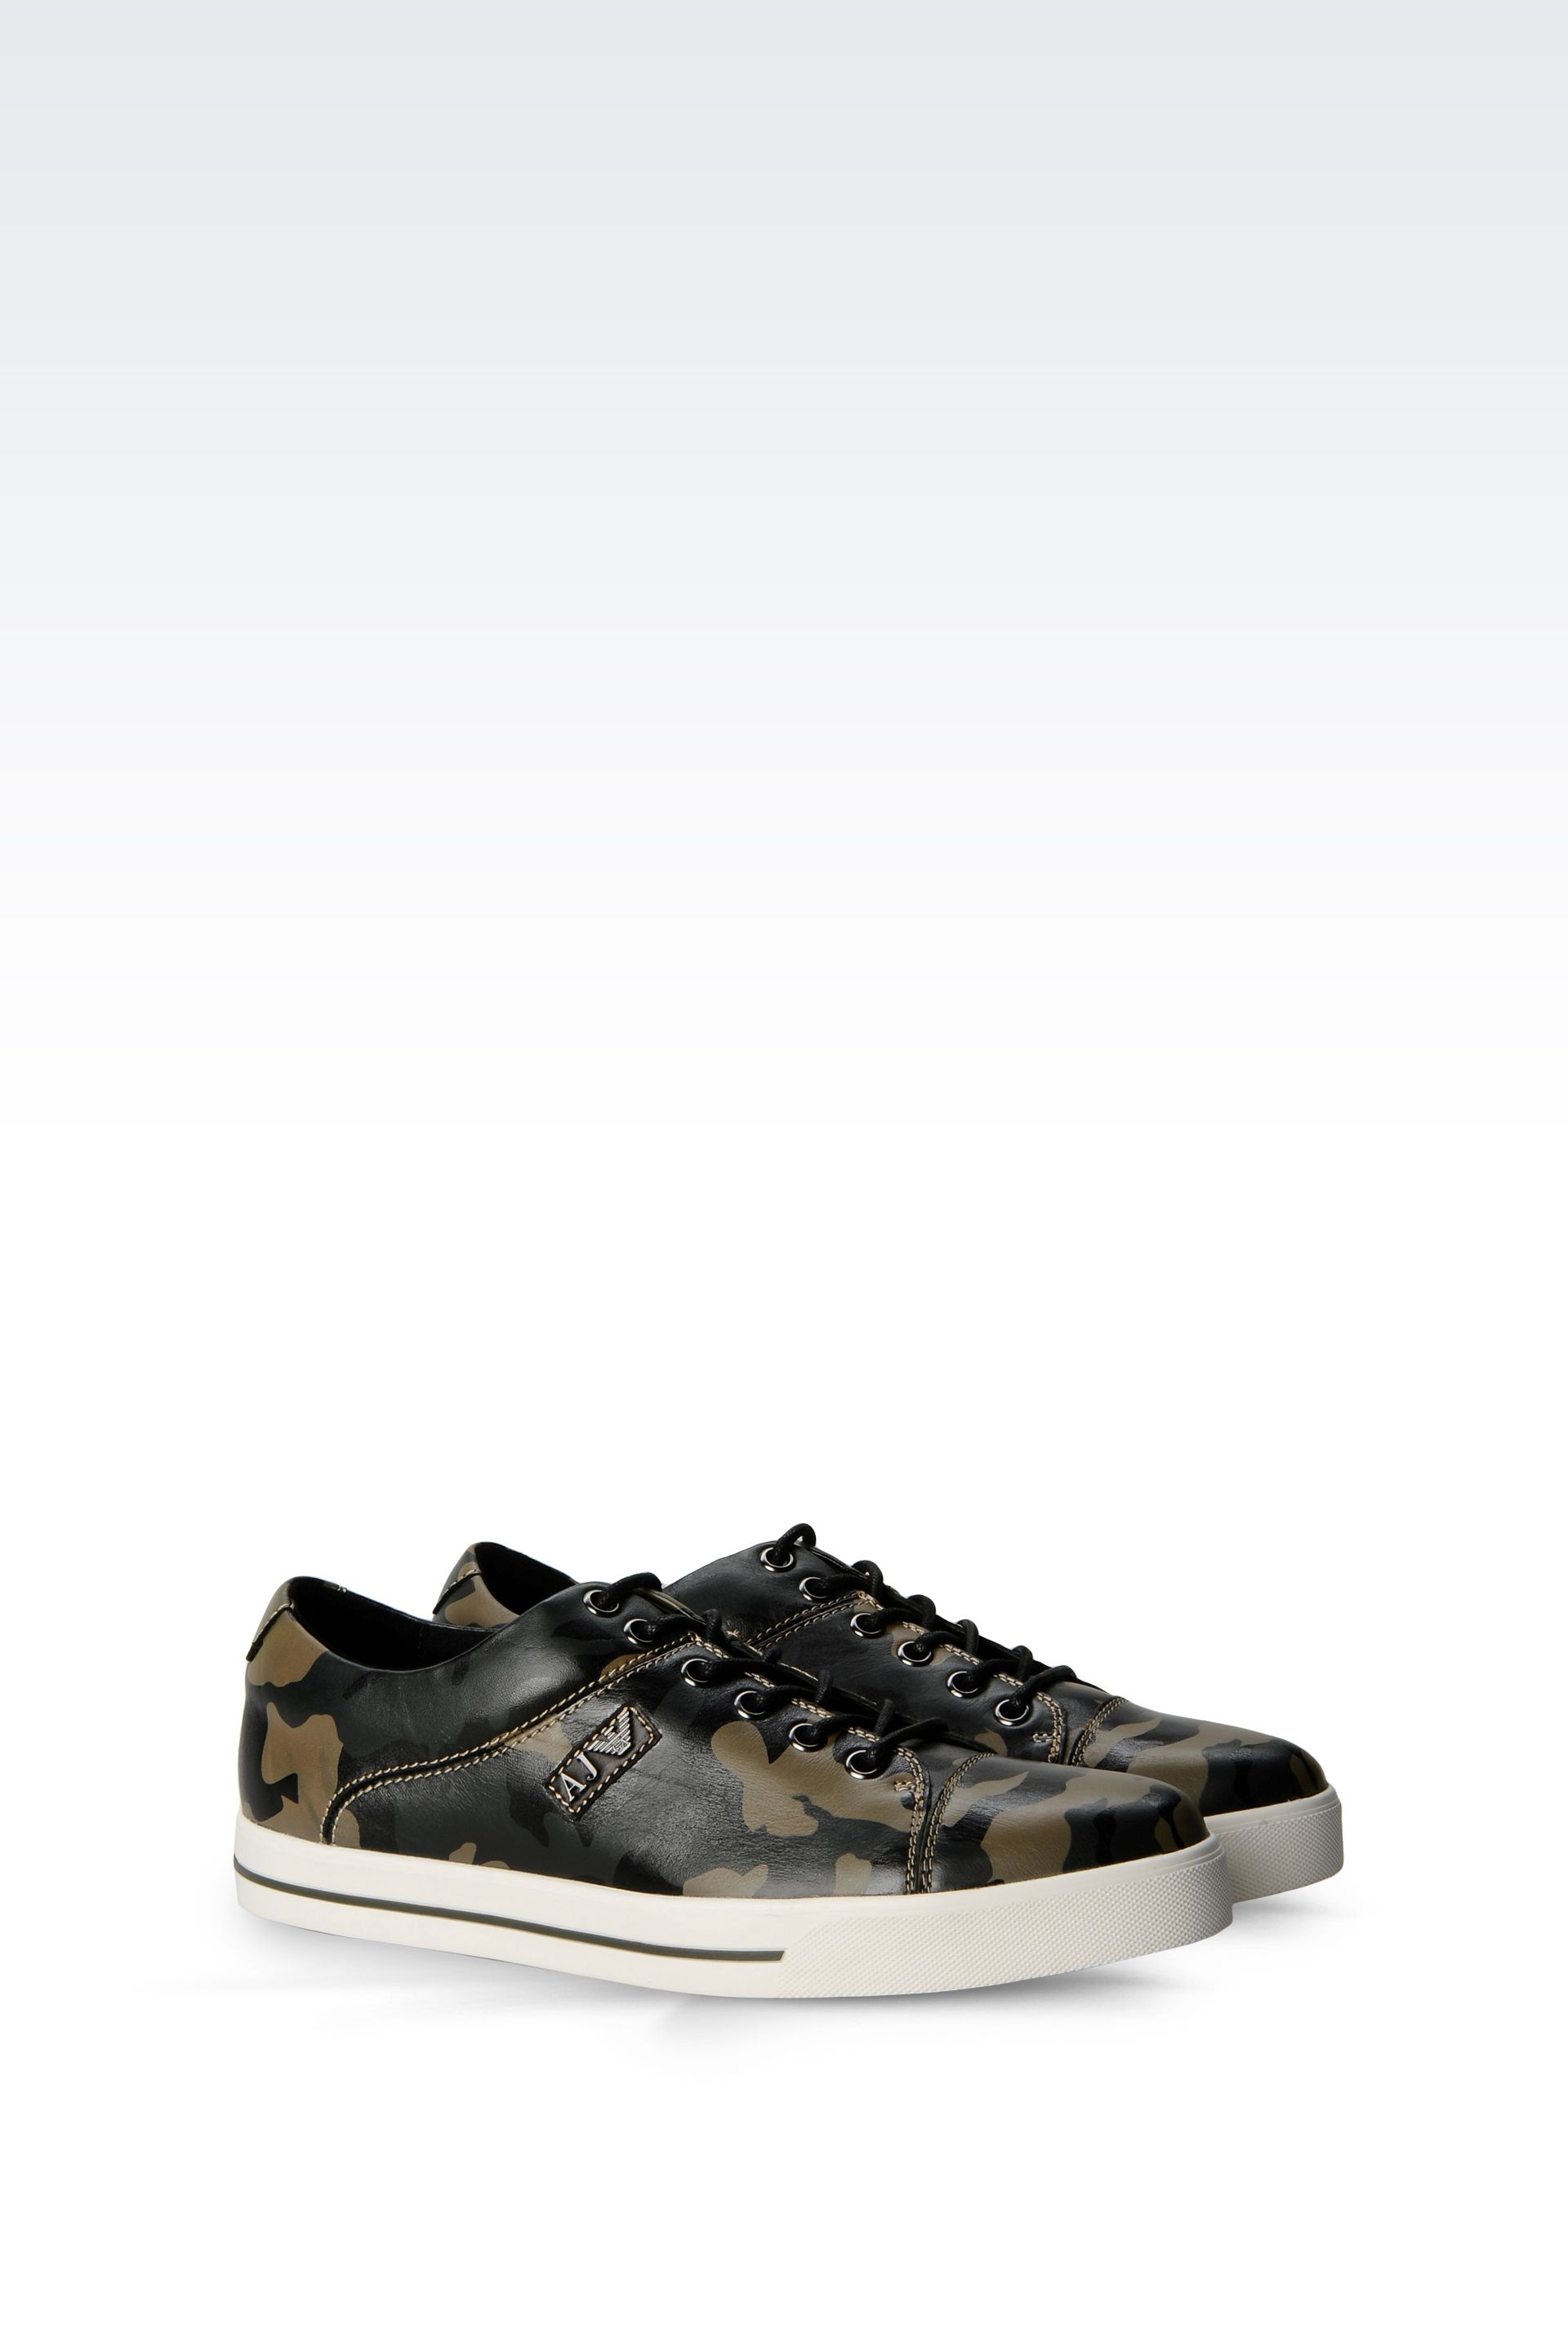 armani jeans sneaker in camouflage print leather in black for men. Black Bedroom Furniture Sets. Home Design Ideas